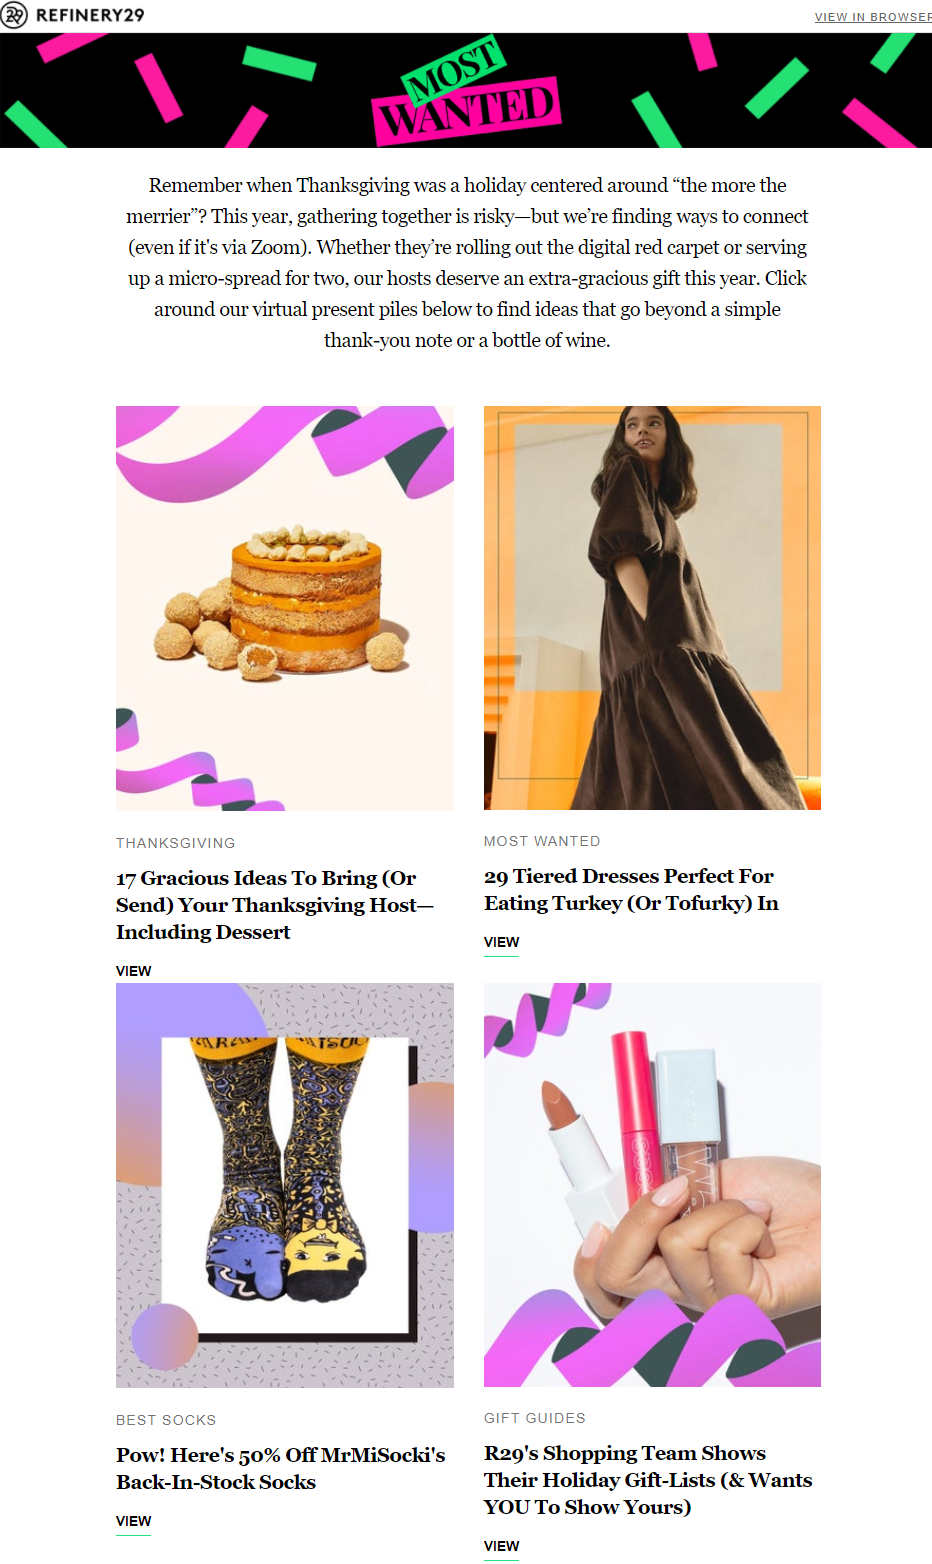 refinery29-your-guide-for-a-very-2020-style-thanksgiving